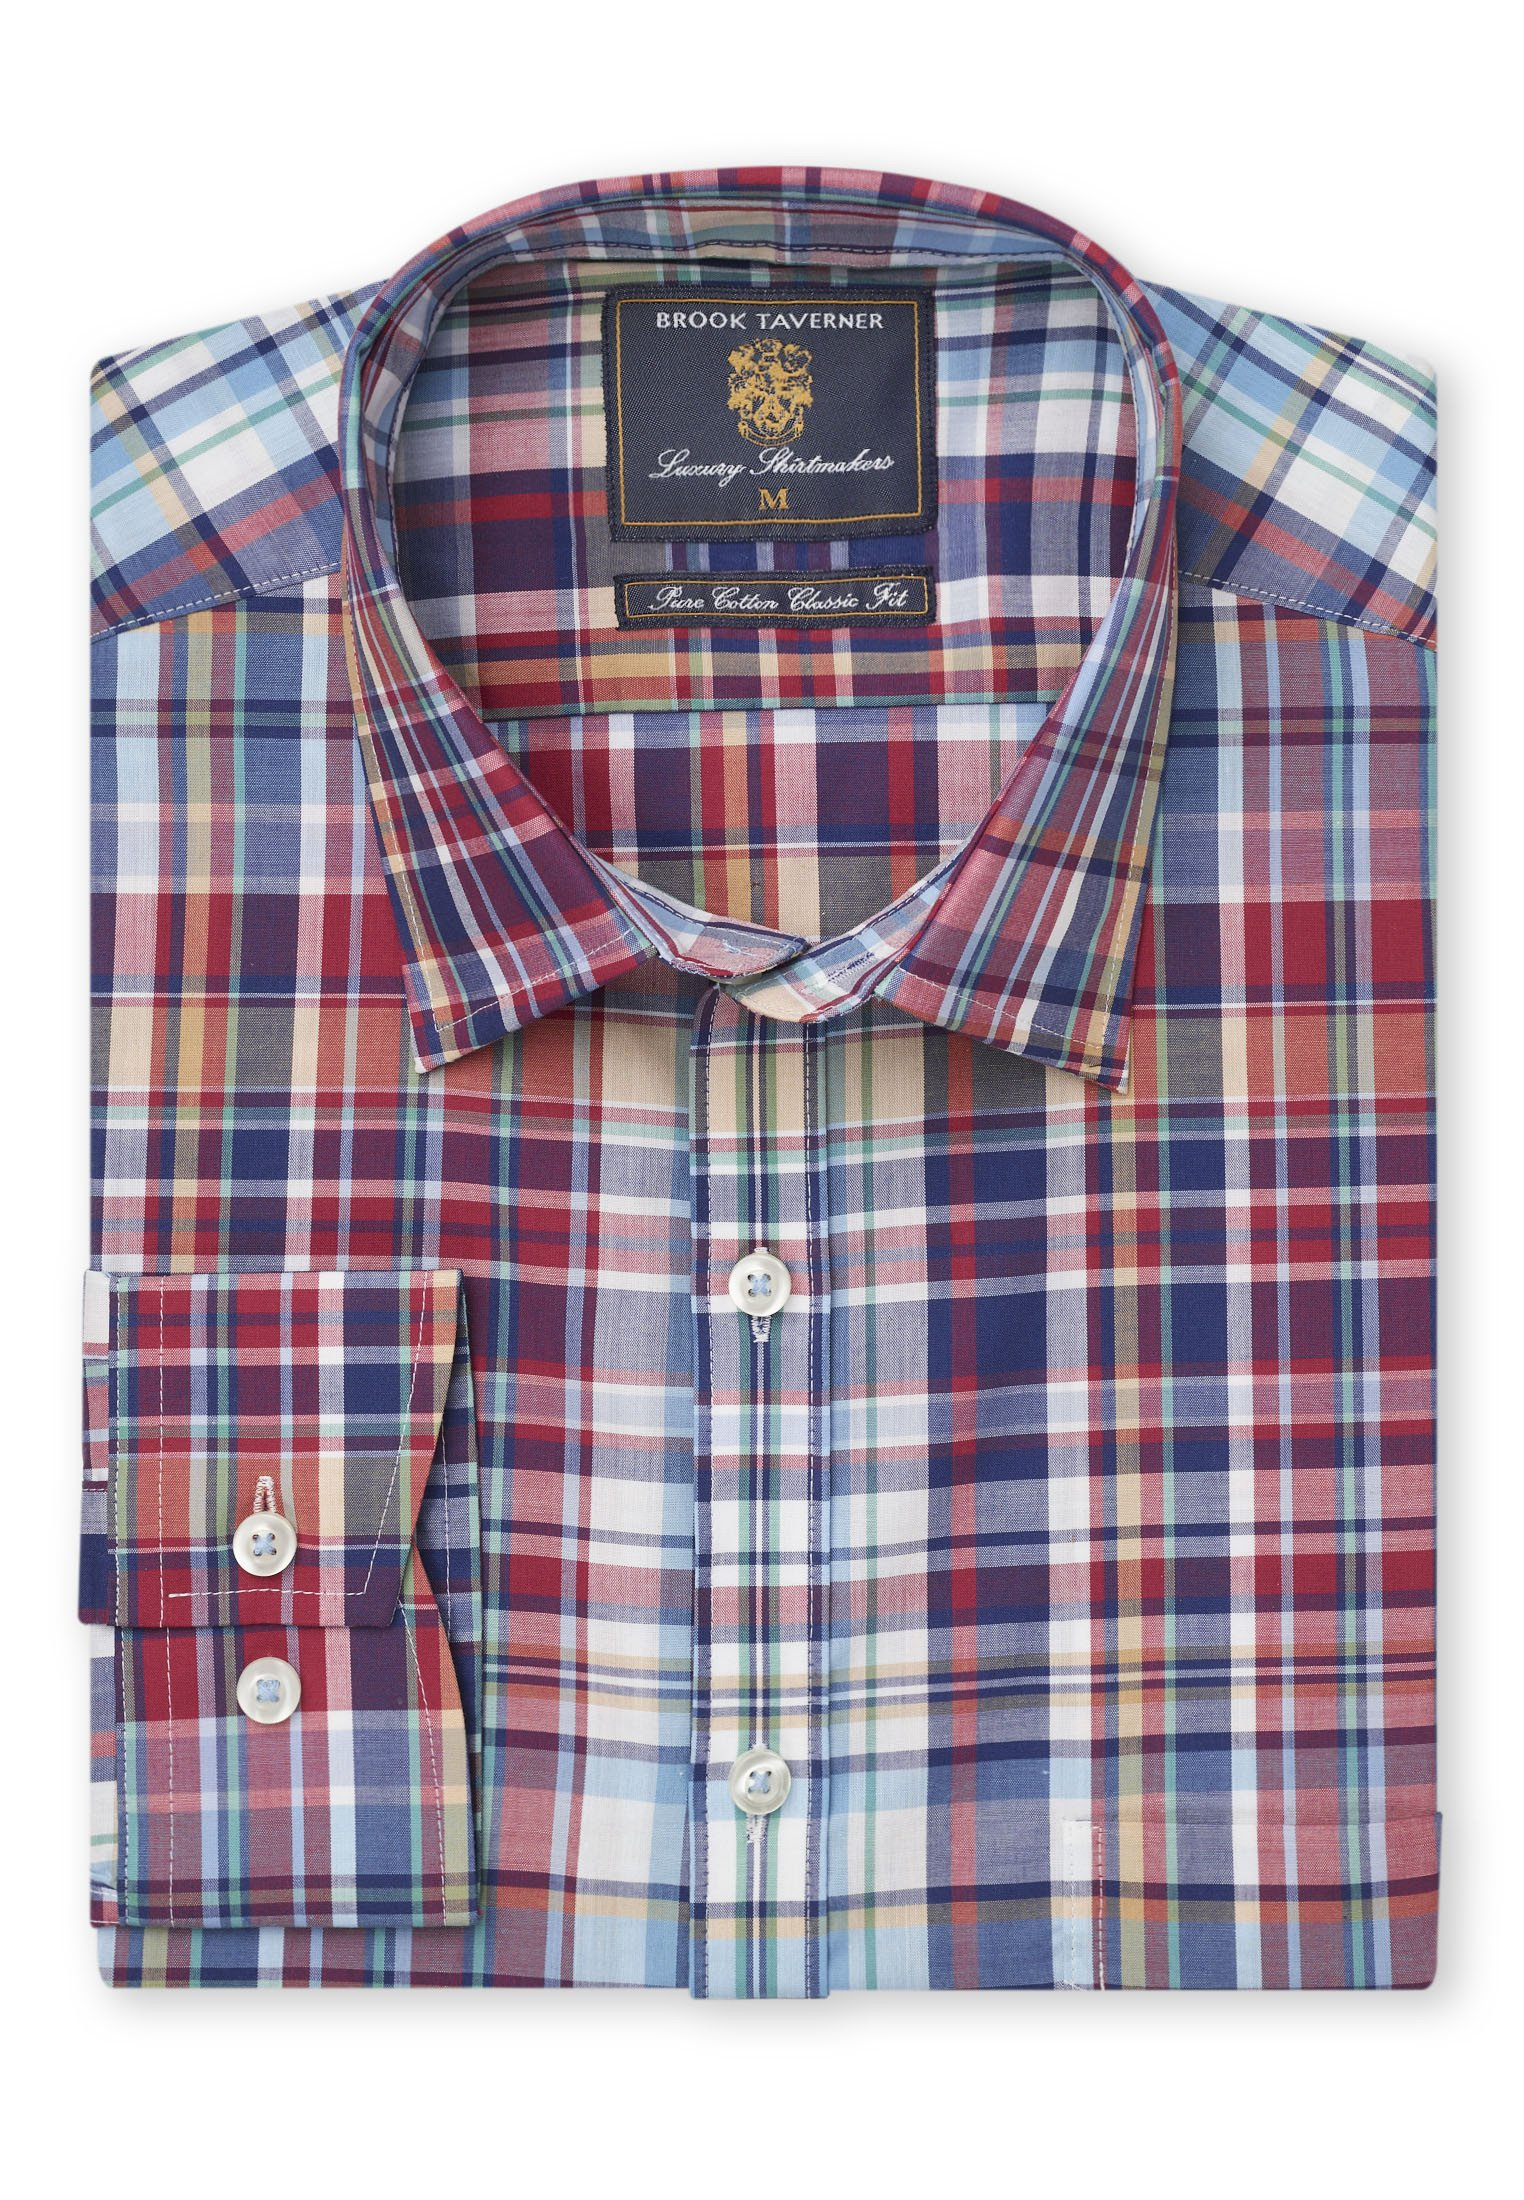 Brook Taverner Long Sleeve Point collar casual tartan shirt